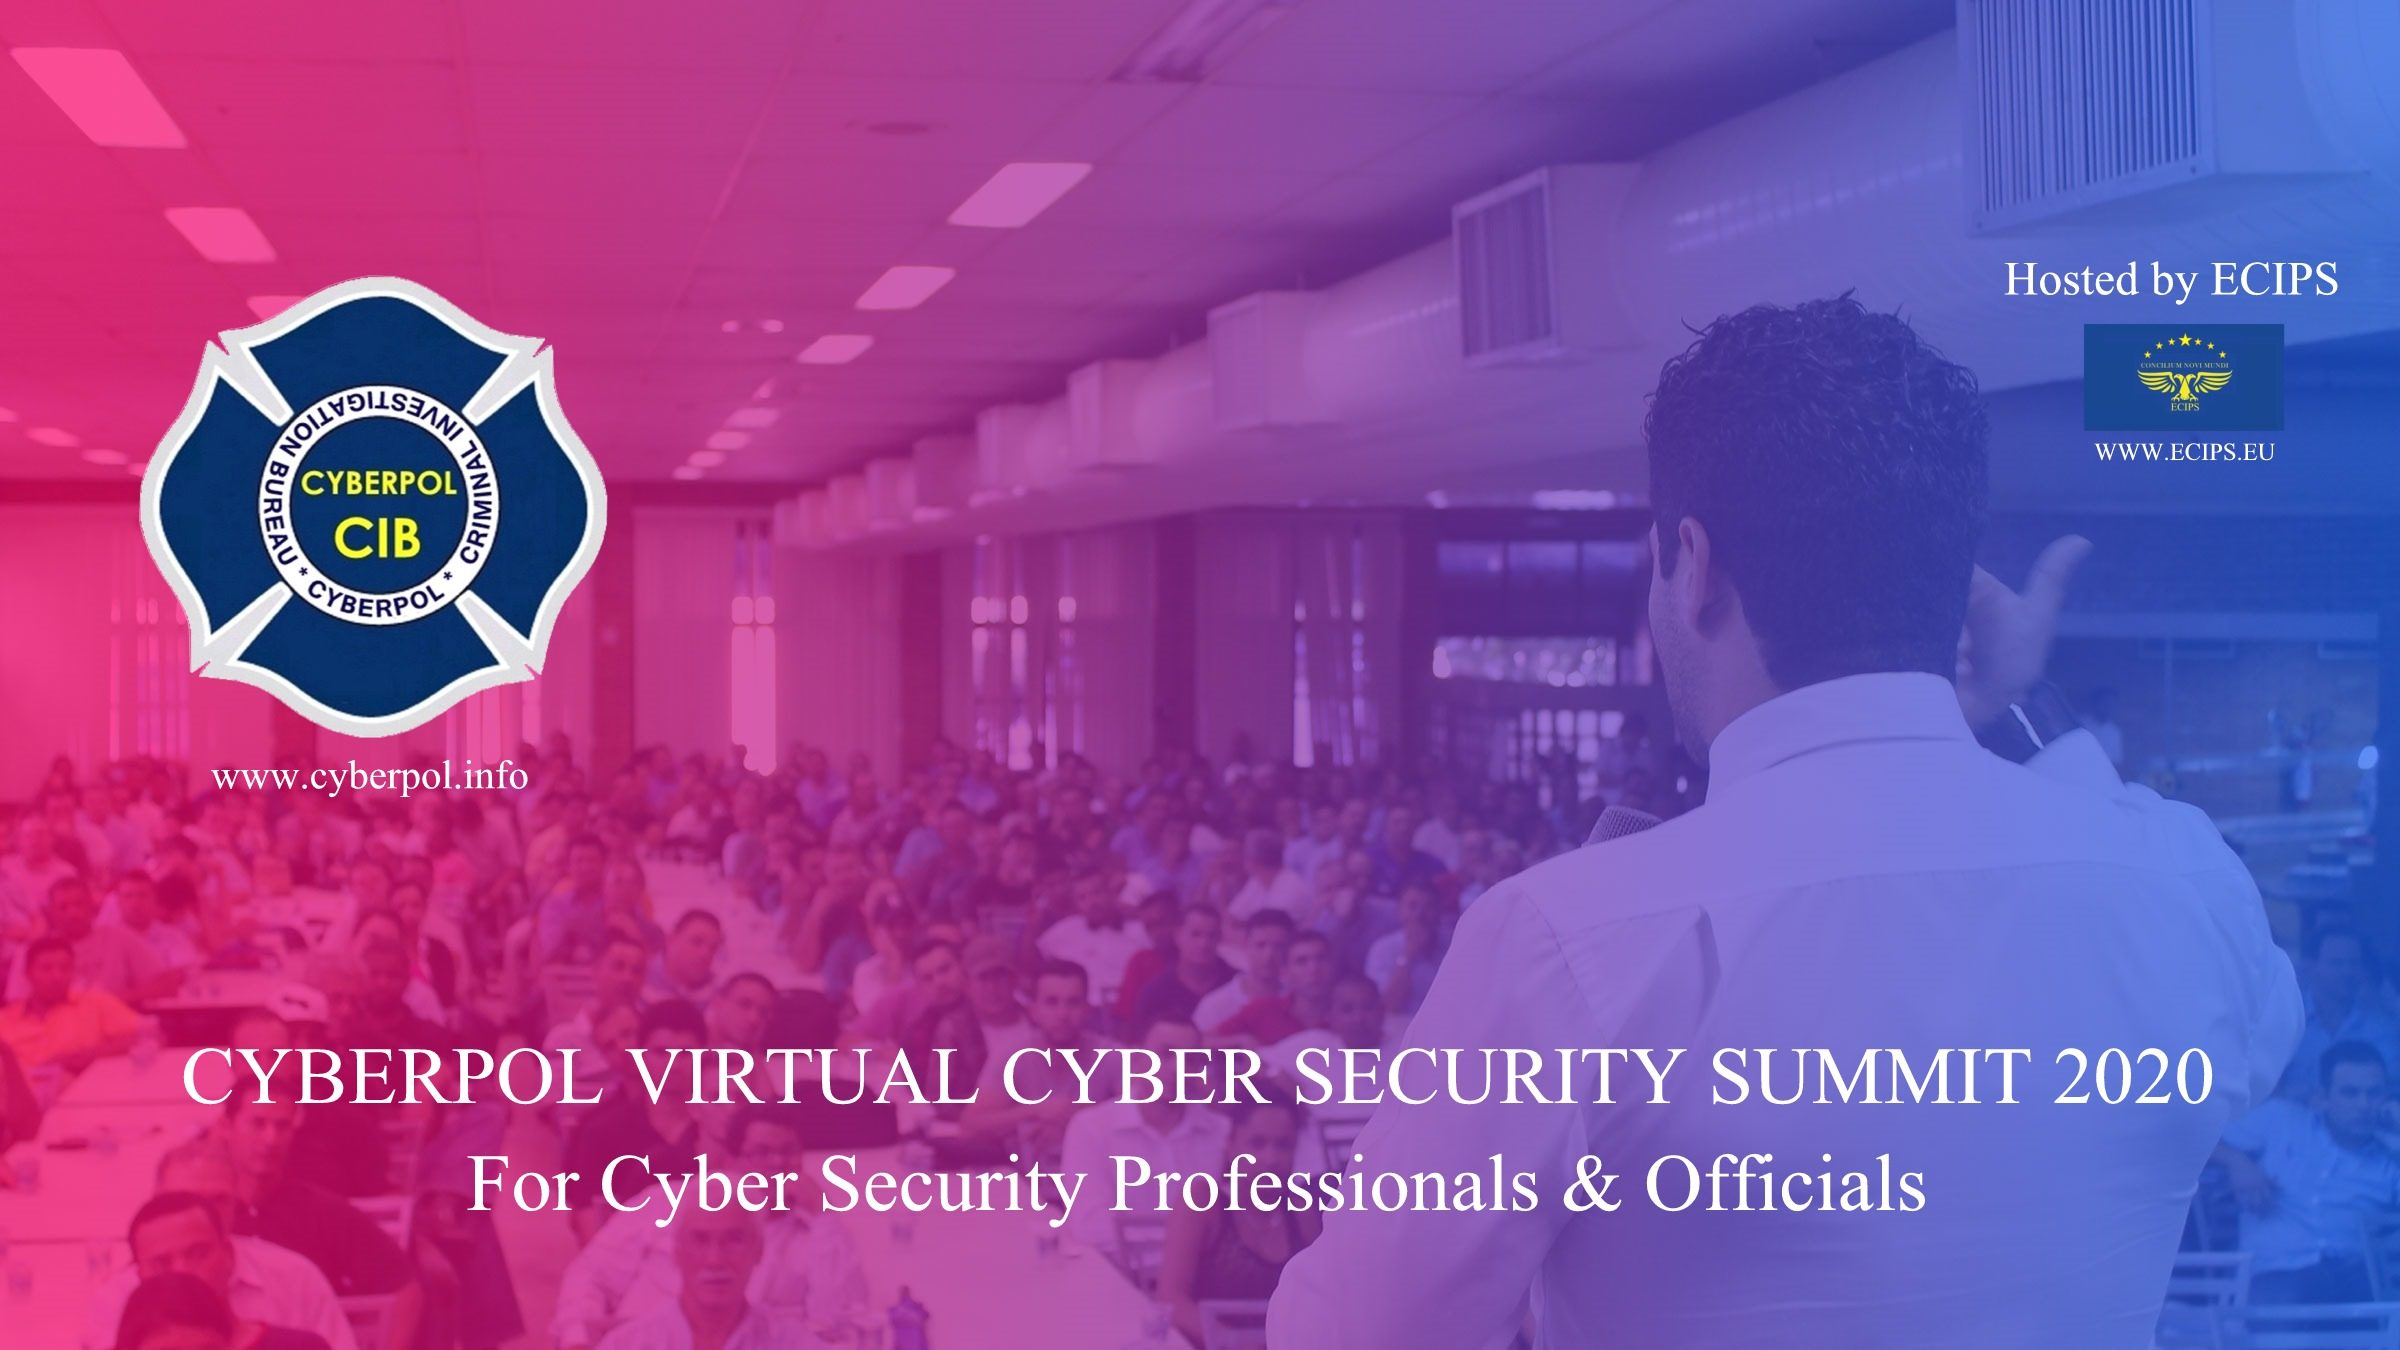 CYBERPOL SUMMIT 2020